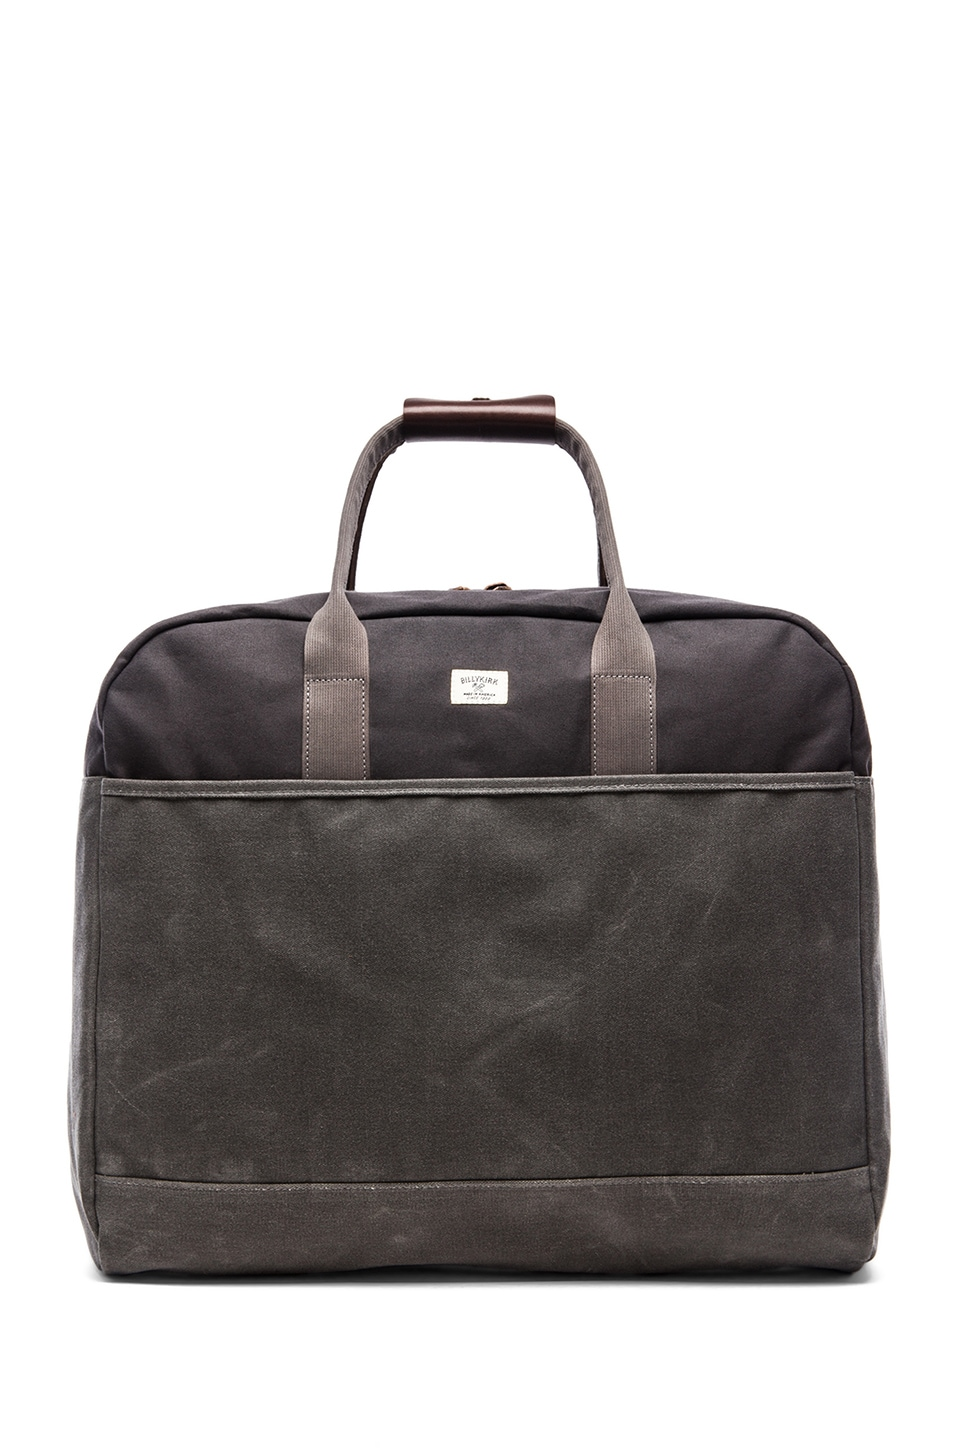 Billykirk No. 330 Military Duffle in Ash Wax W/ Brown